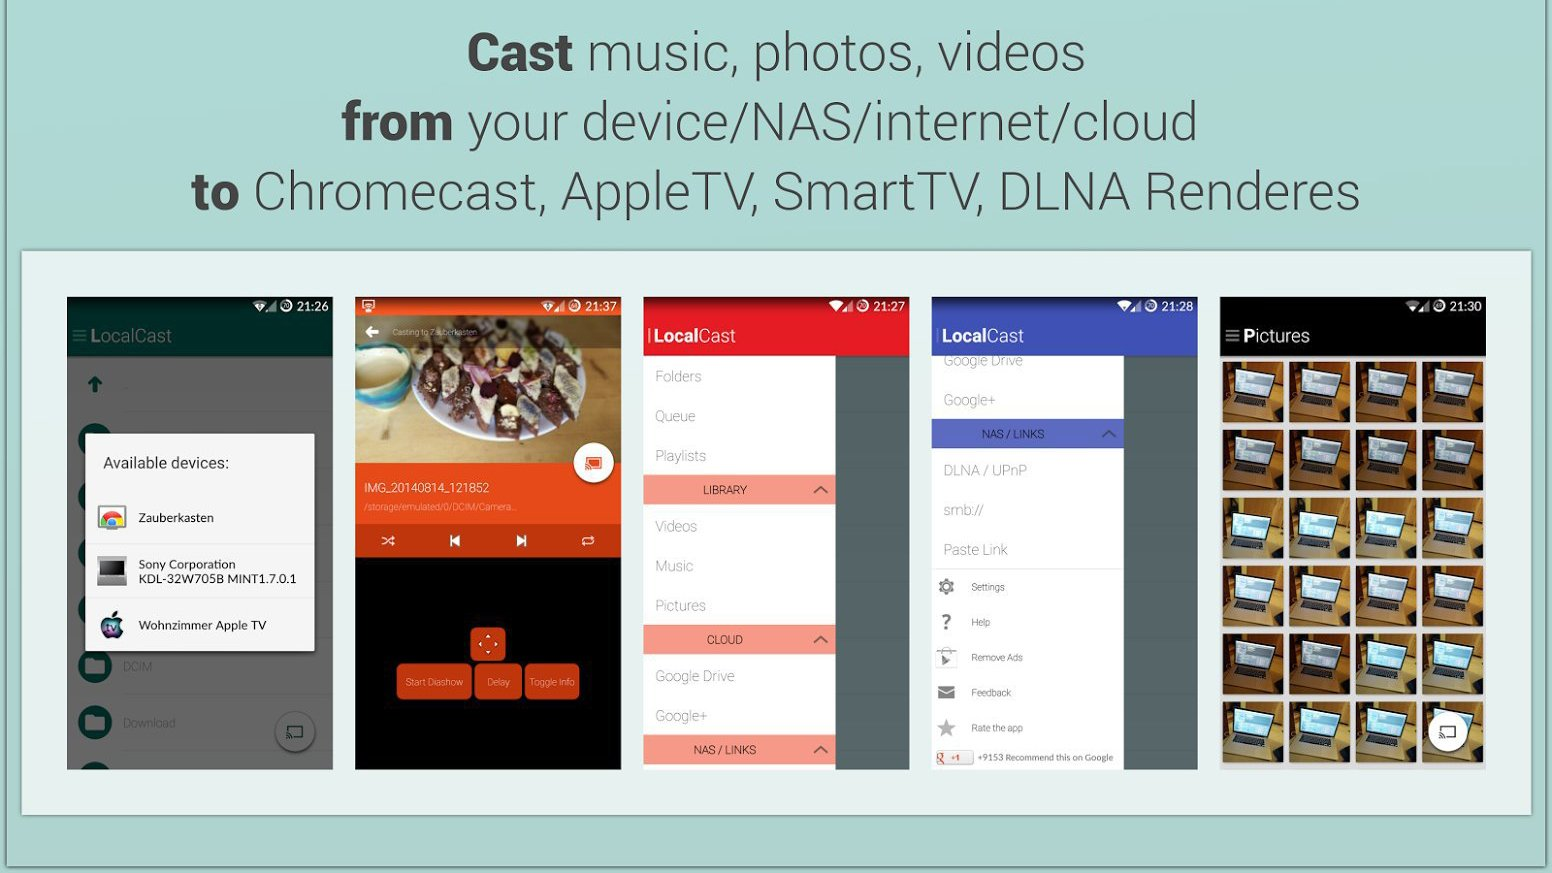 Best Chromecast apps in 2018: The apps you need to download for